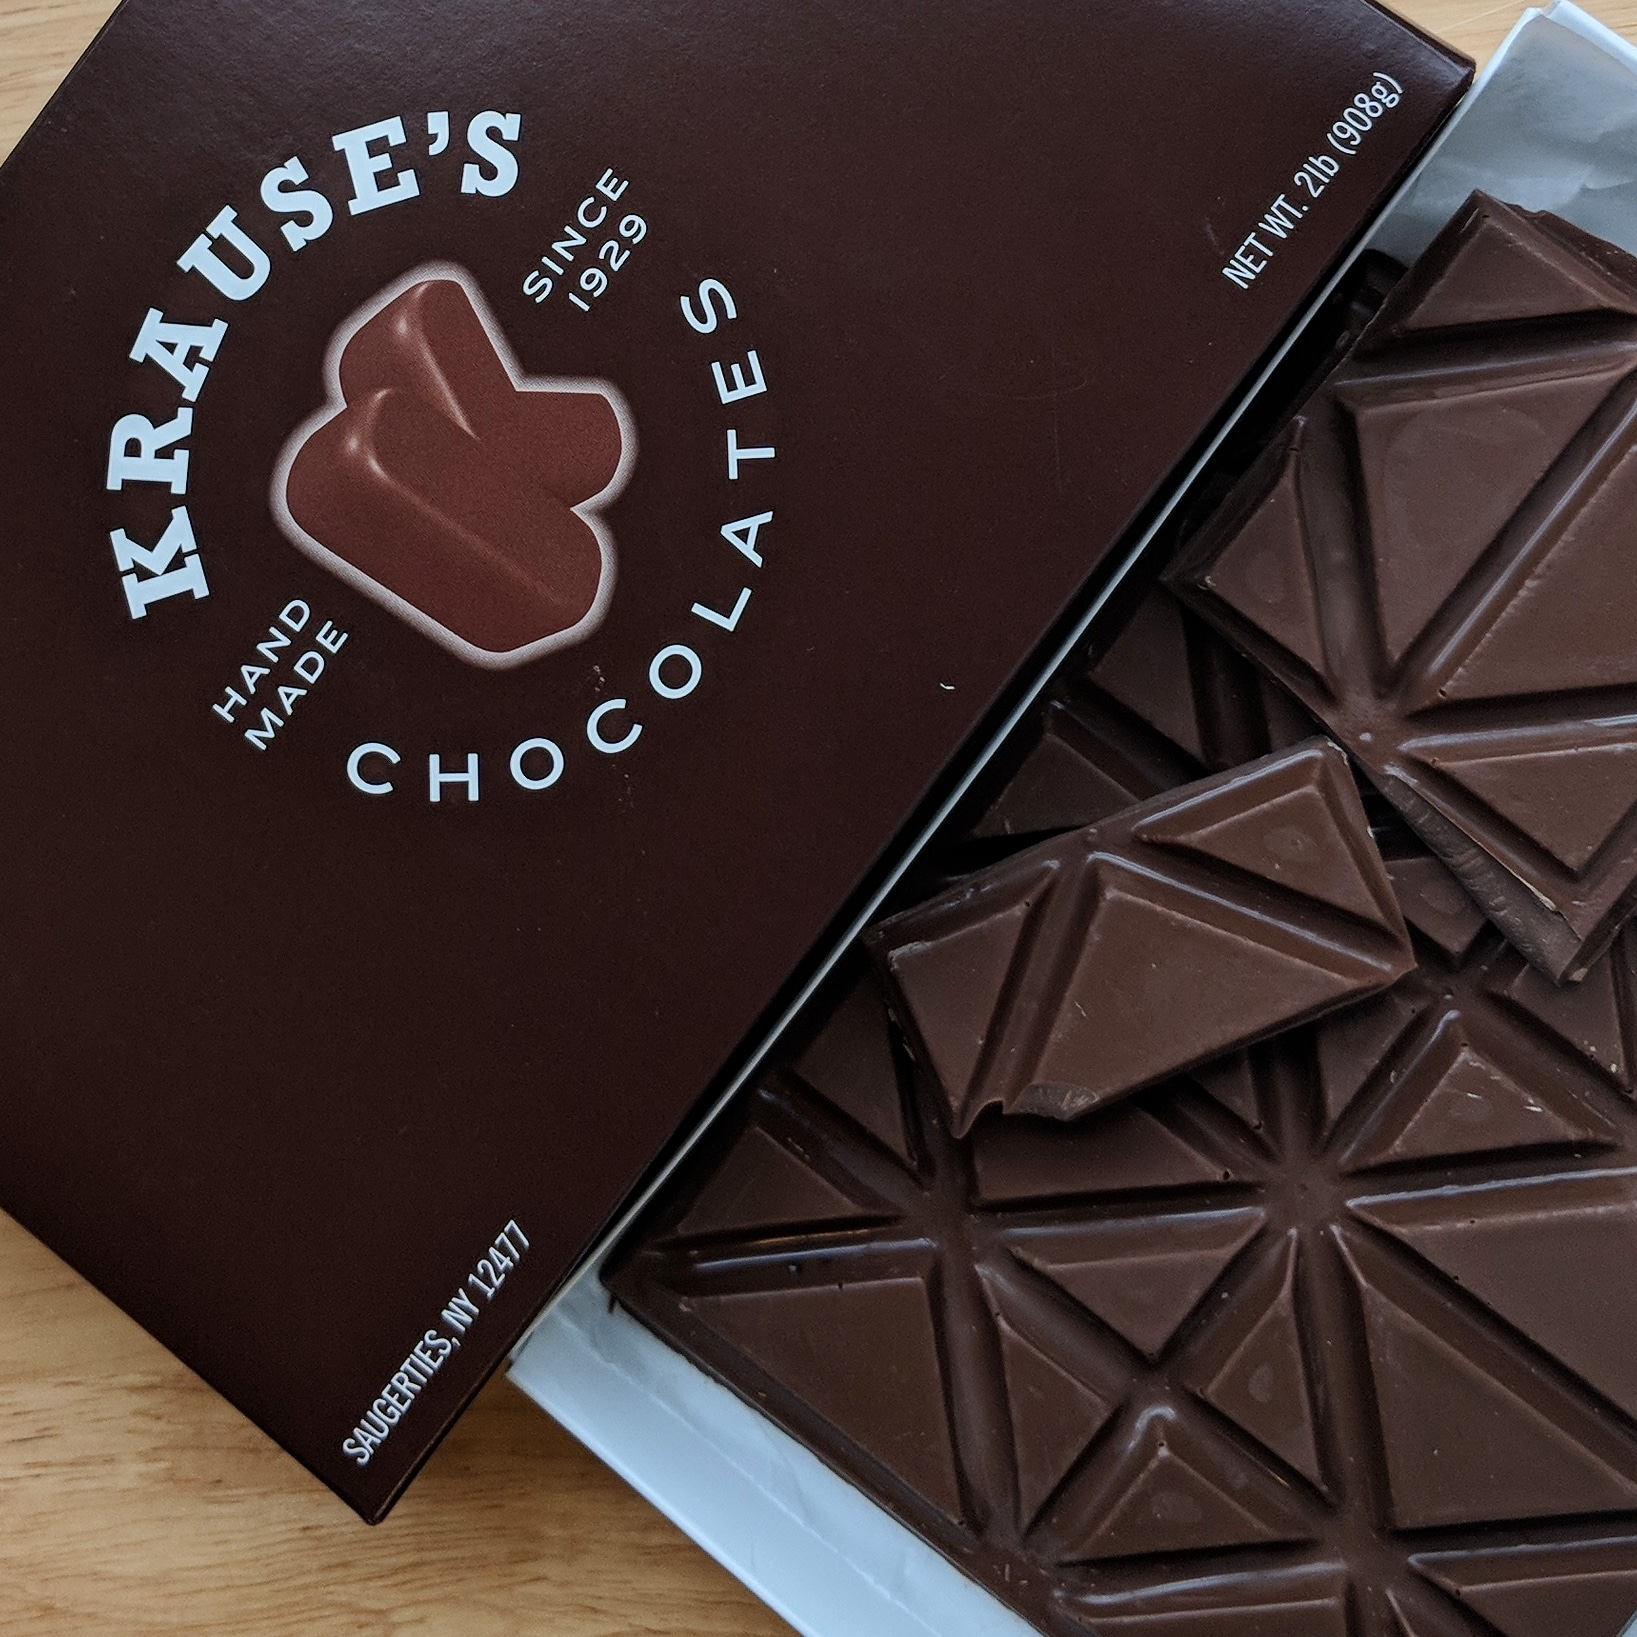 Krauses Chocolate